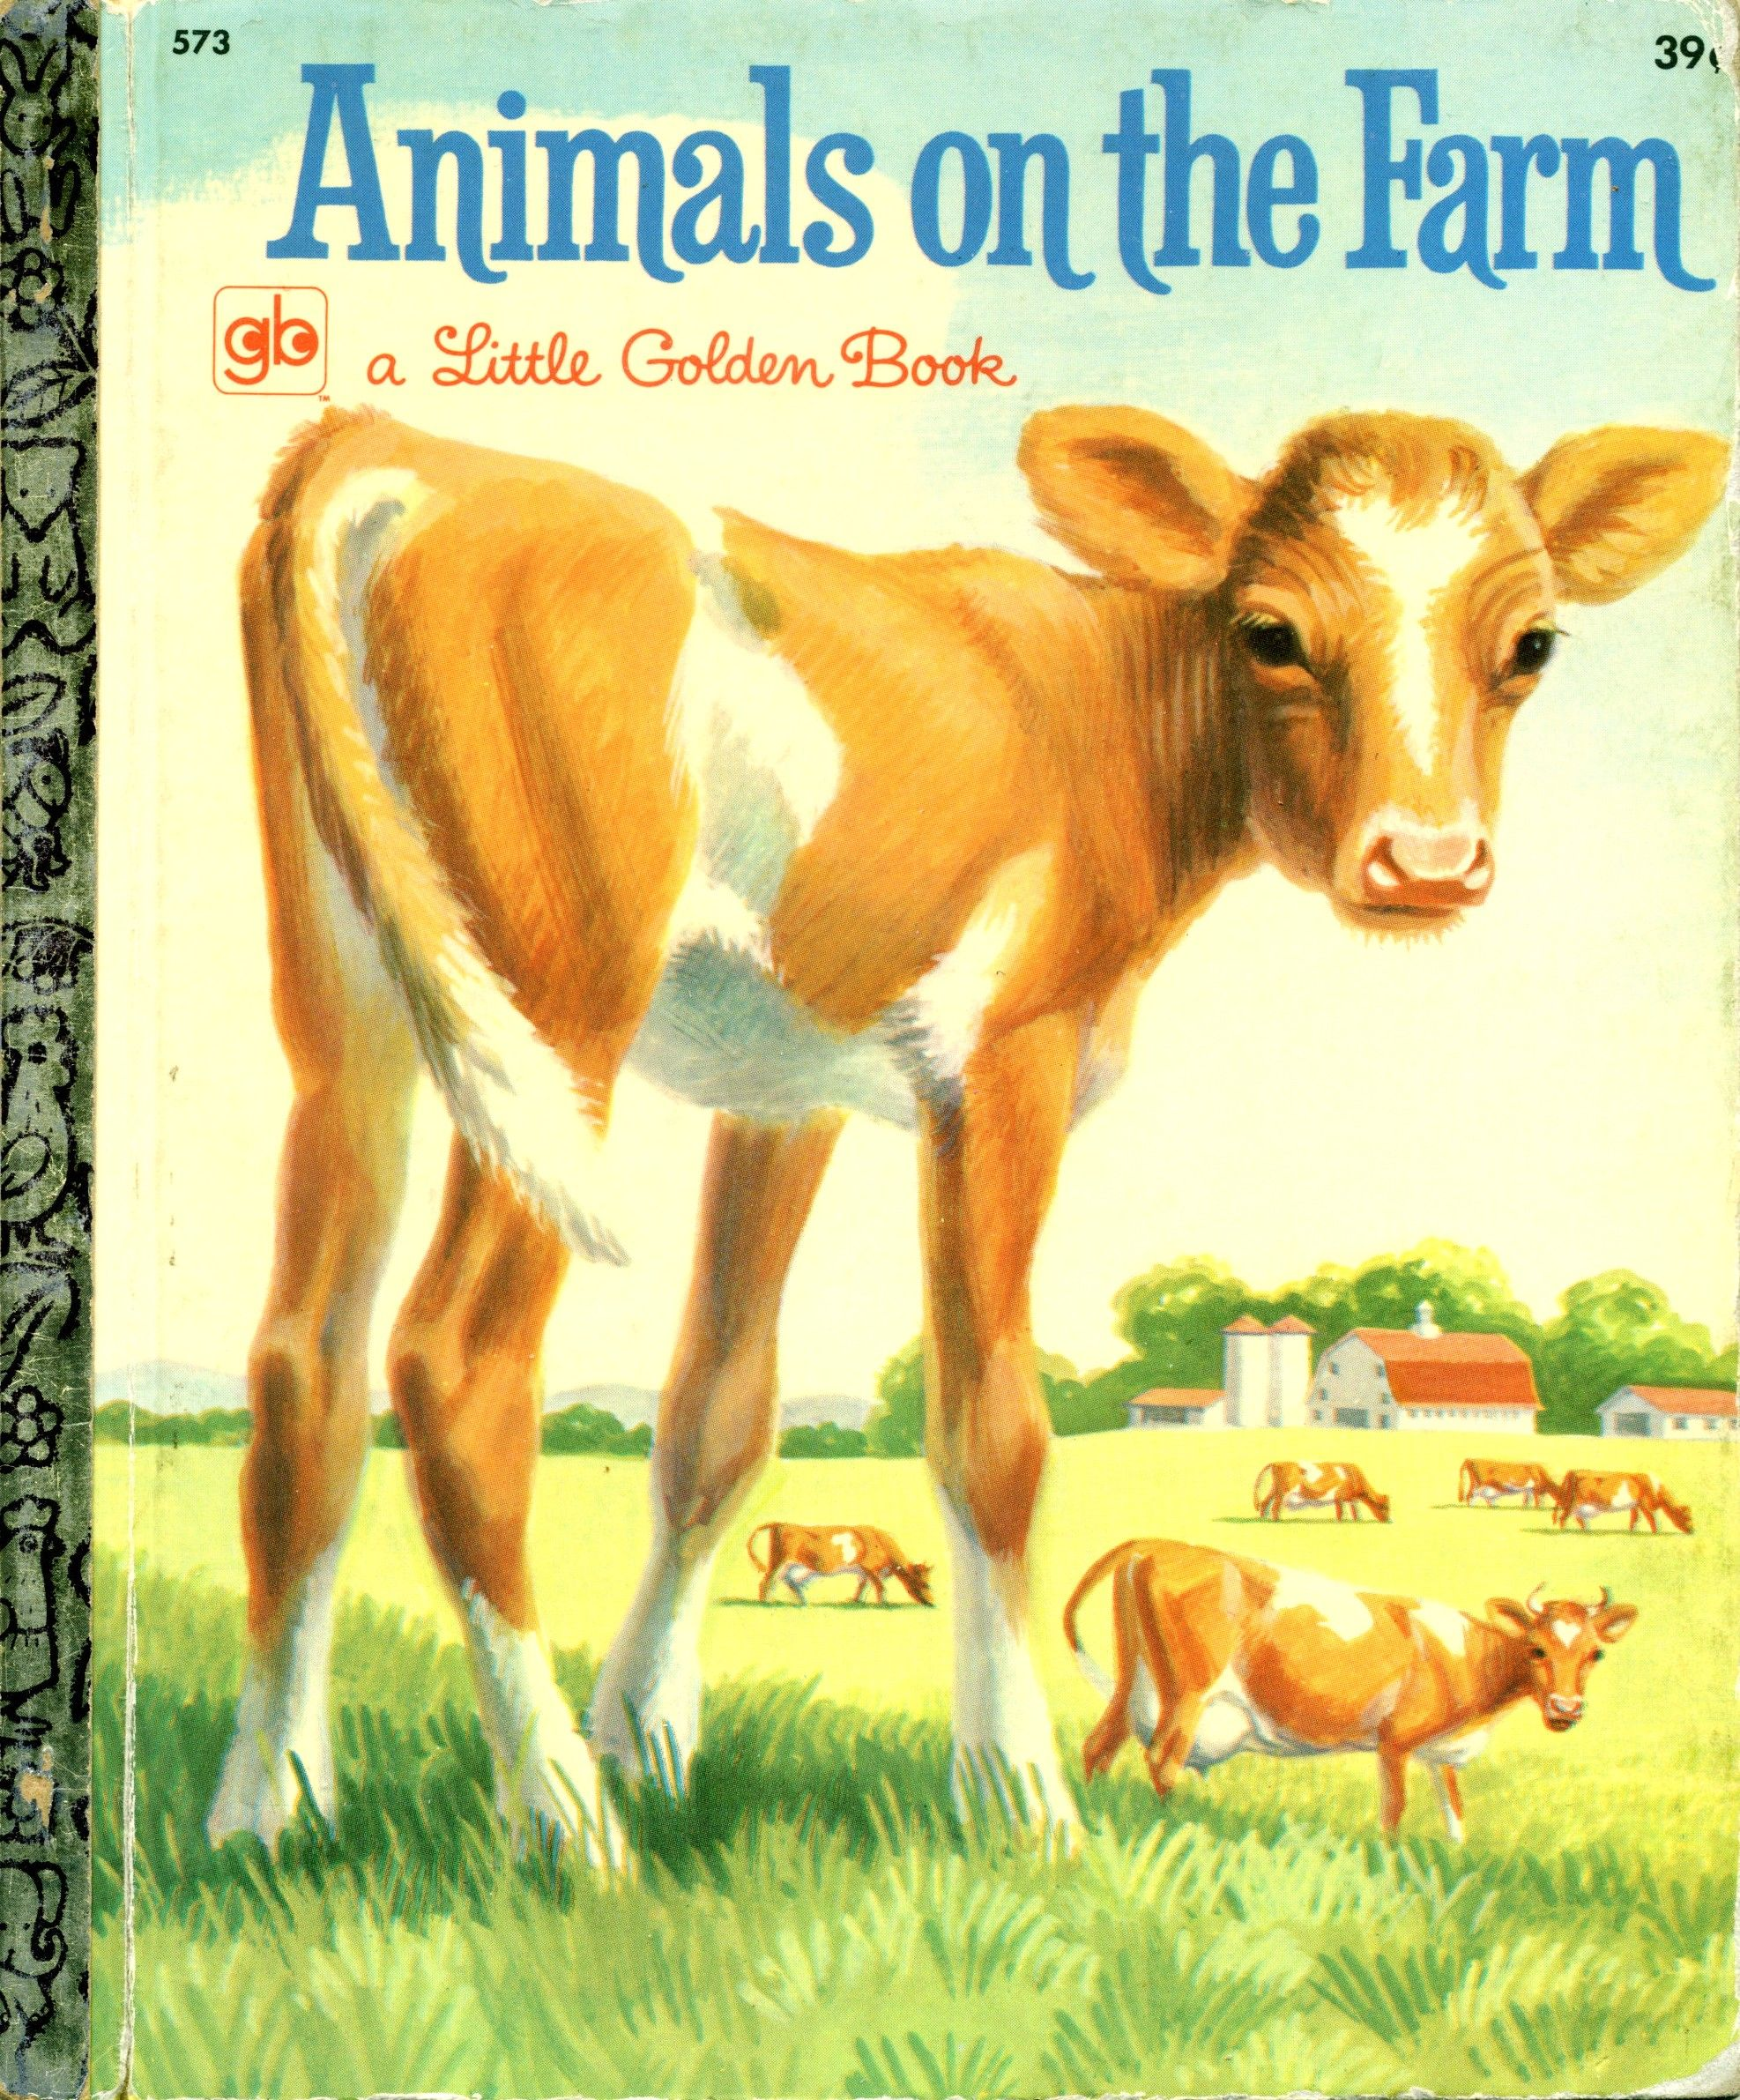 Animals on the farm 1963 1968 3rd printing 1971 by